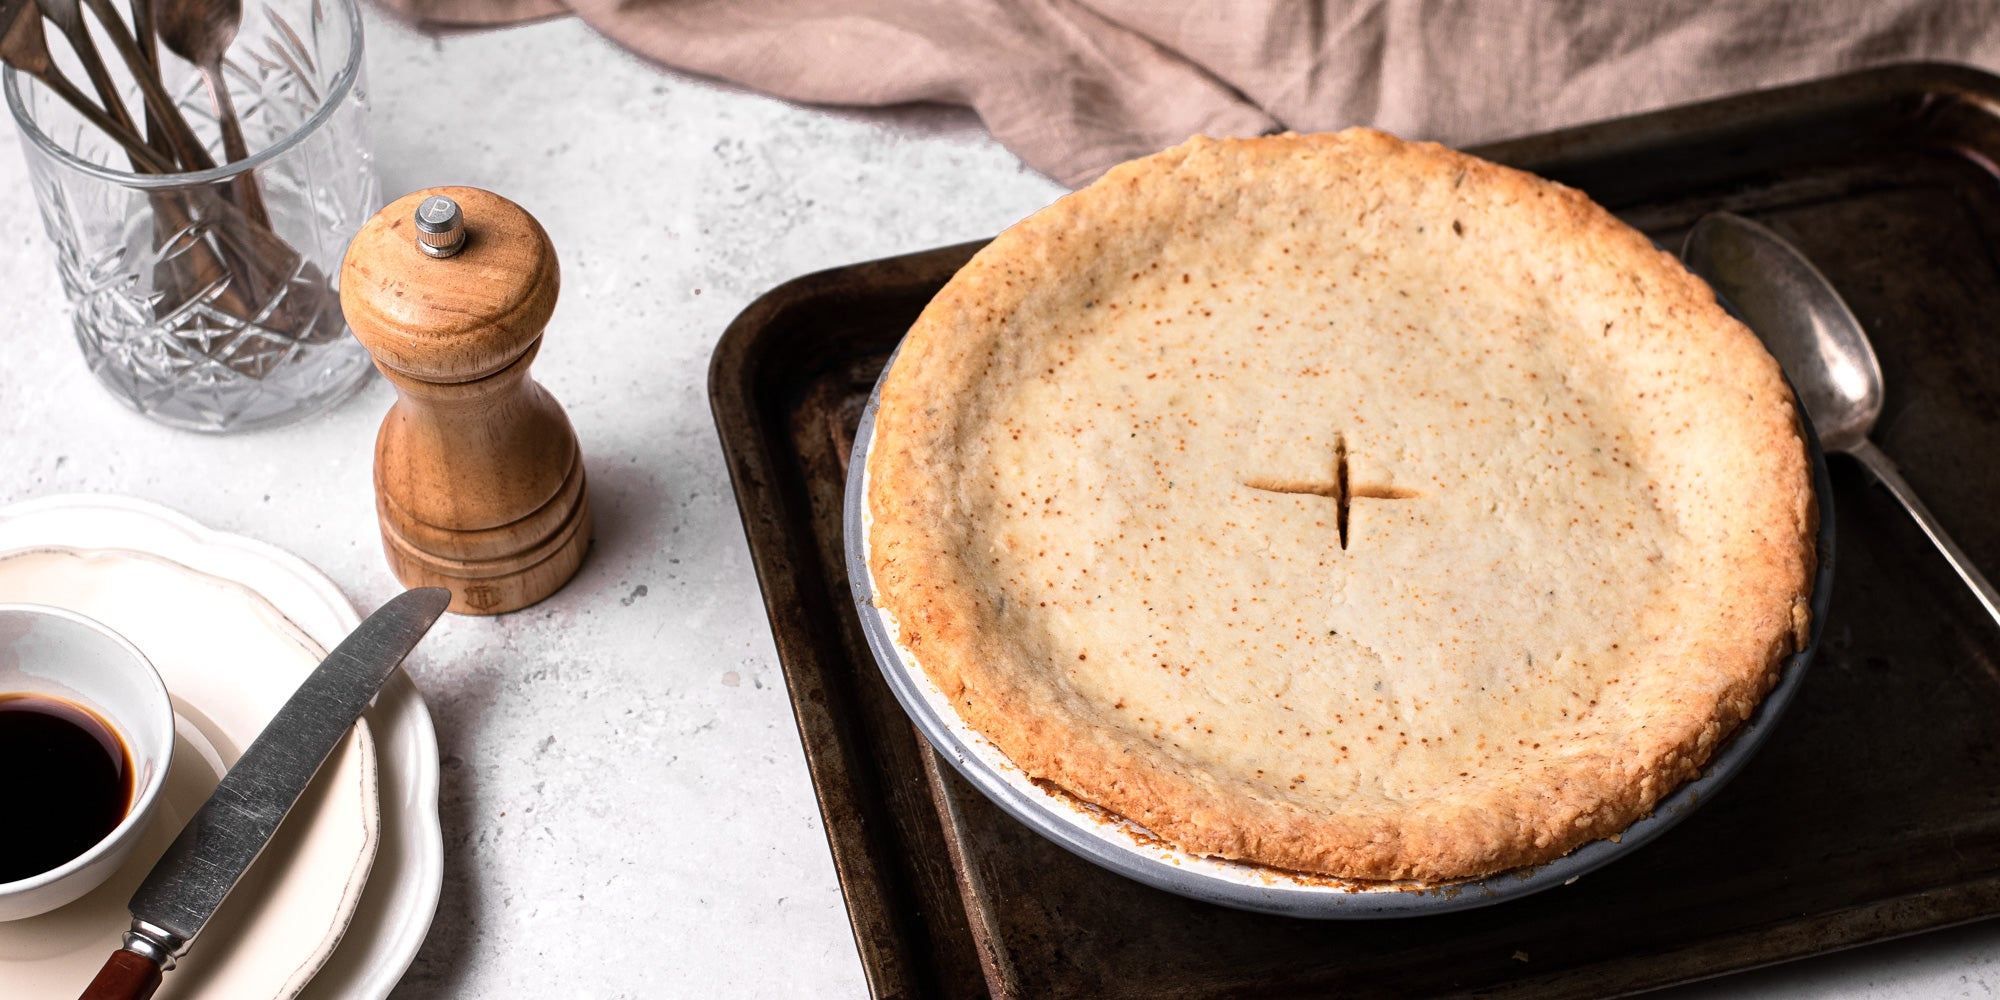 Suet Crusted Beef & Onion Pie on a baking tray, next to a pepper mill and a set of plates with a knife ready to serve